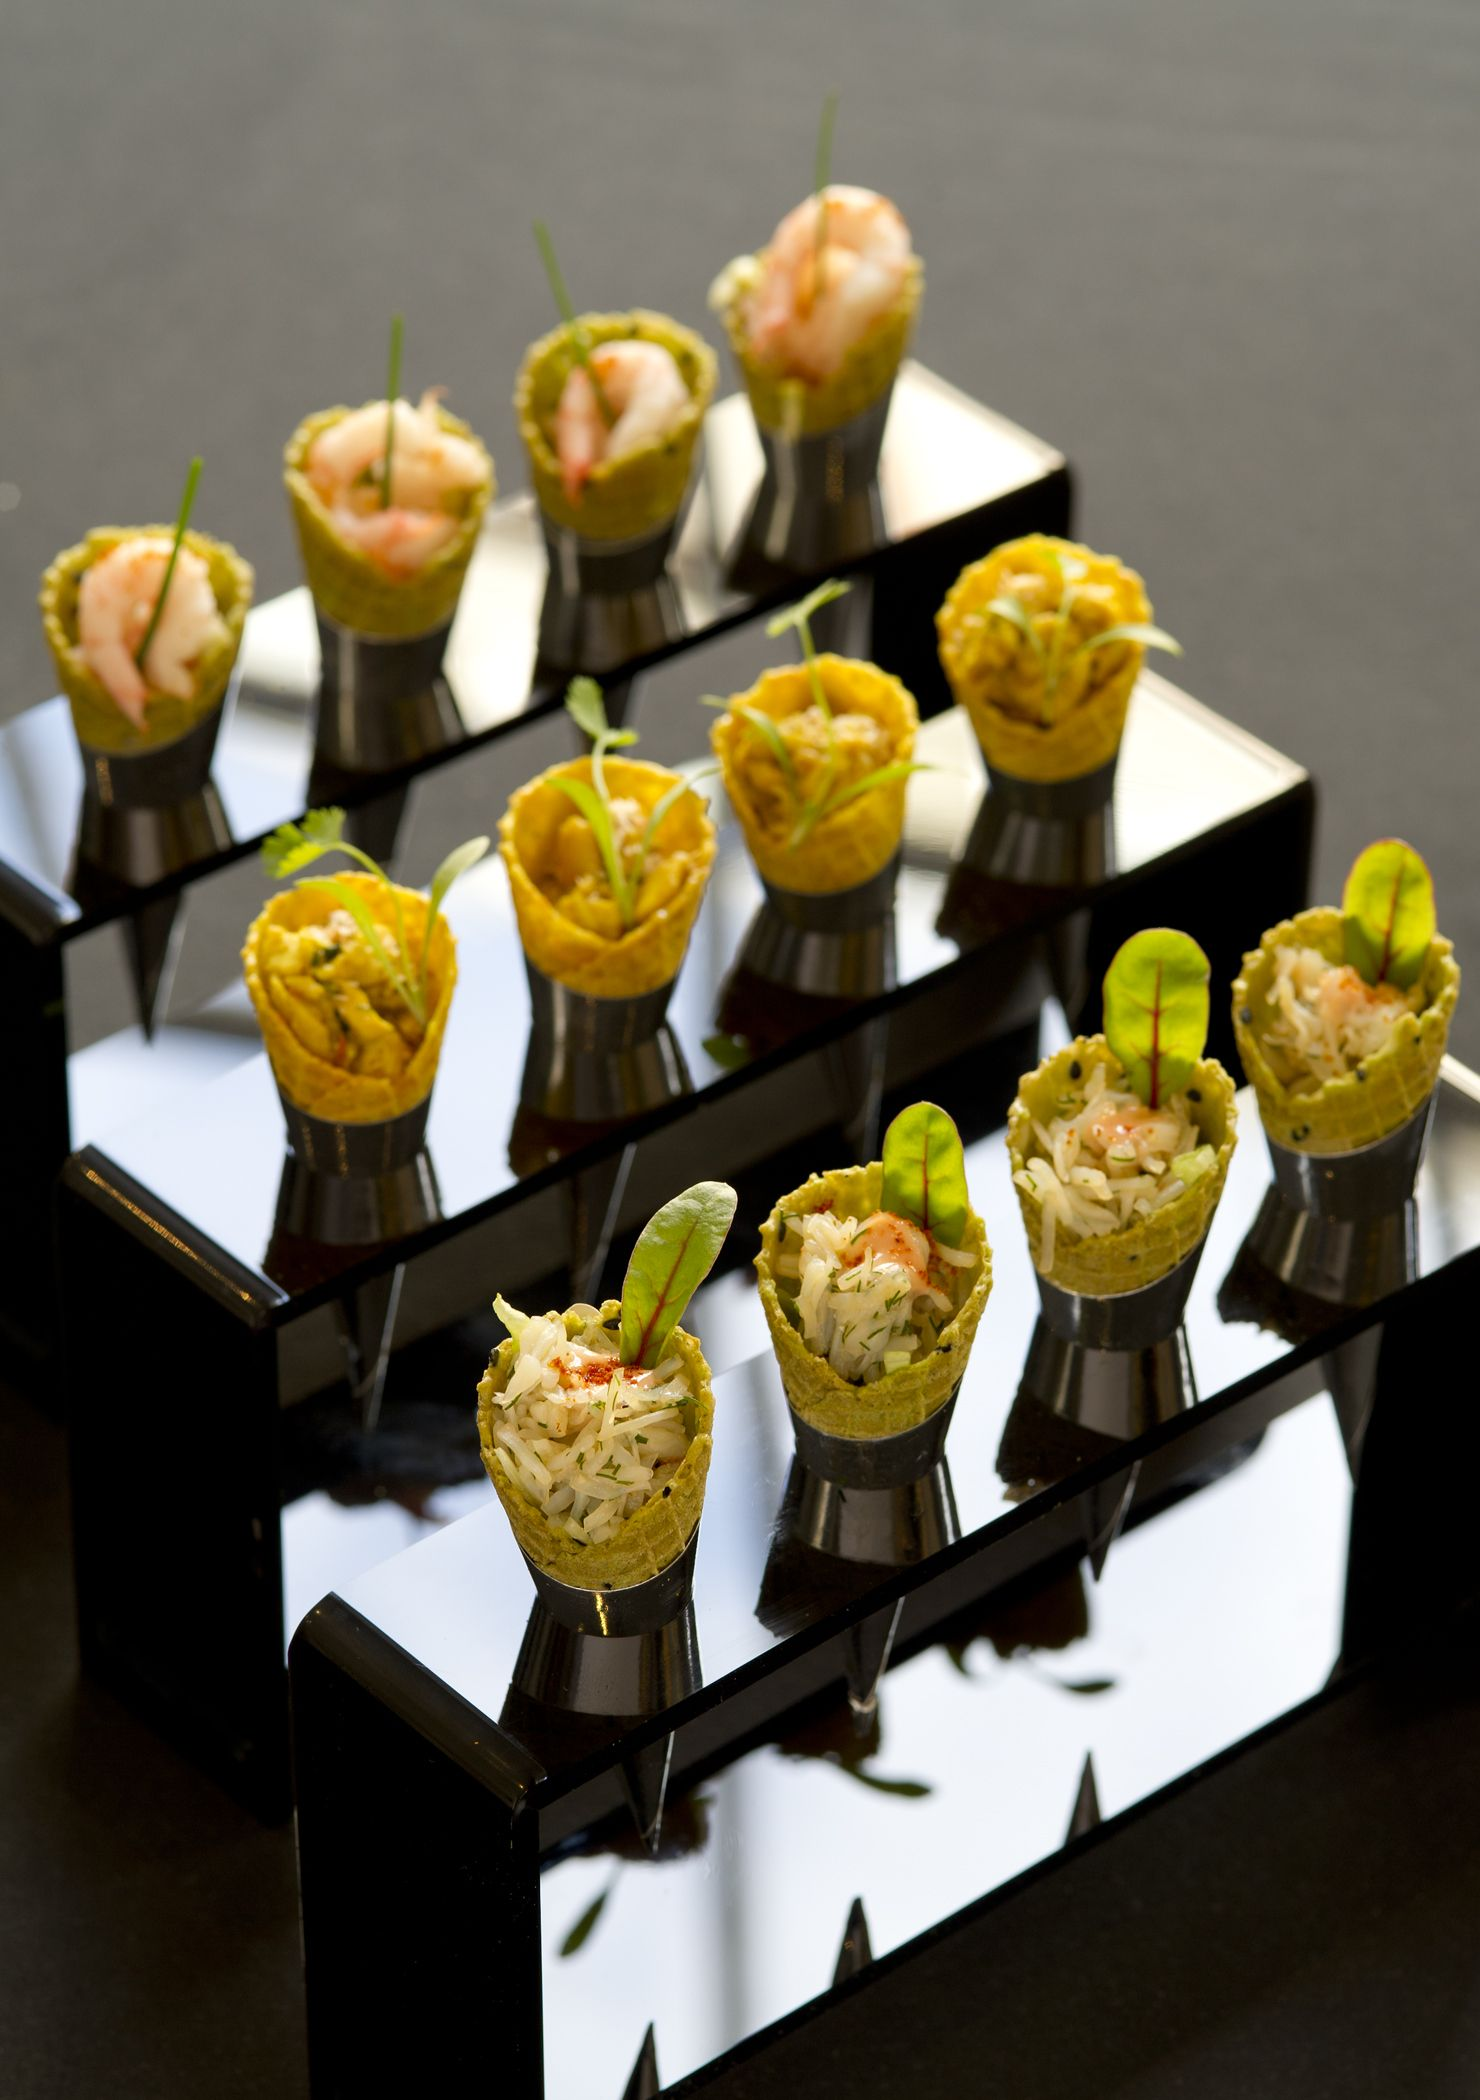 Canape Rapido Paris 195 Piccadilly Canapes Coronation Chicken Cones Passion